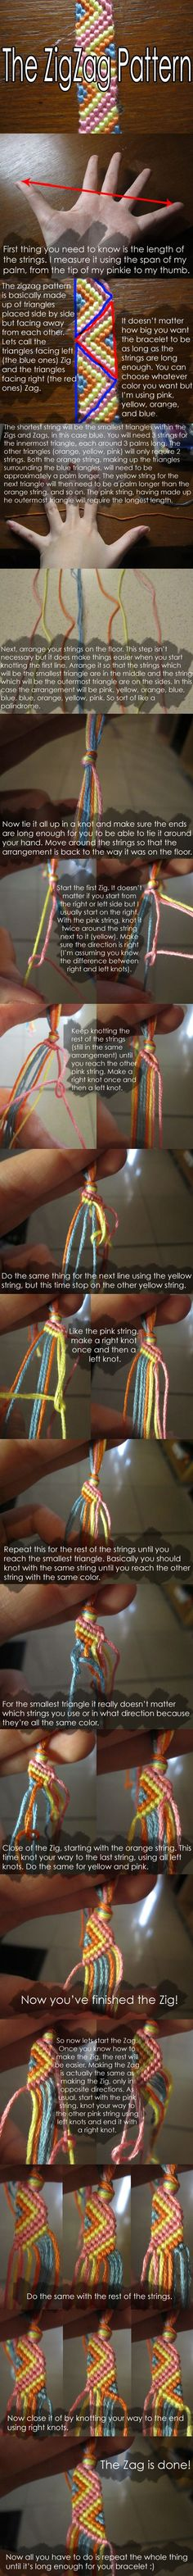 Zigzag Bracelet Tutorial by ~clarrr17 on deviantART